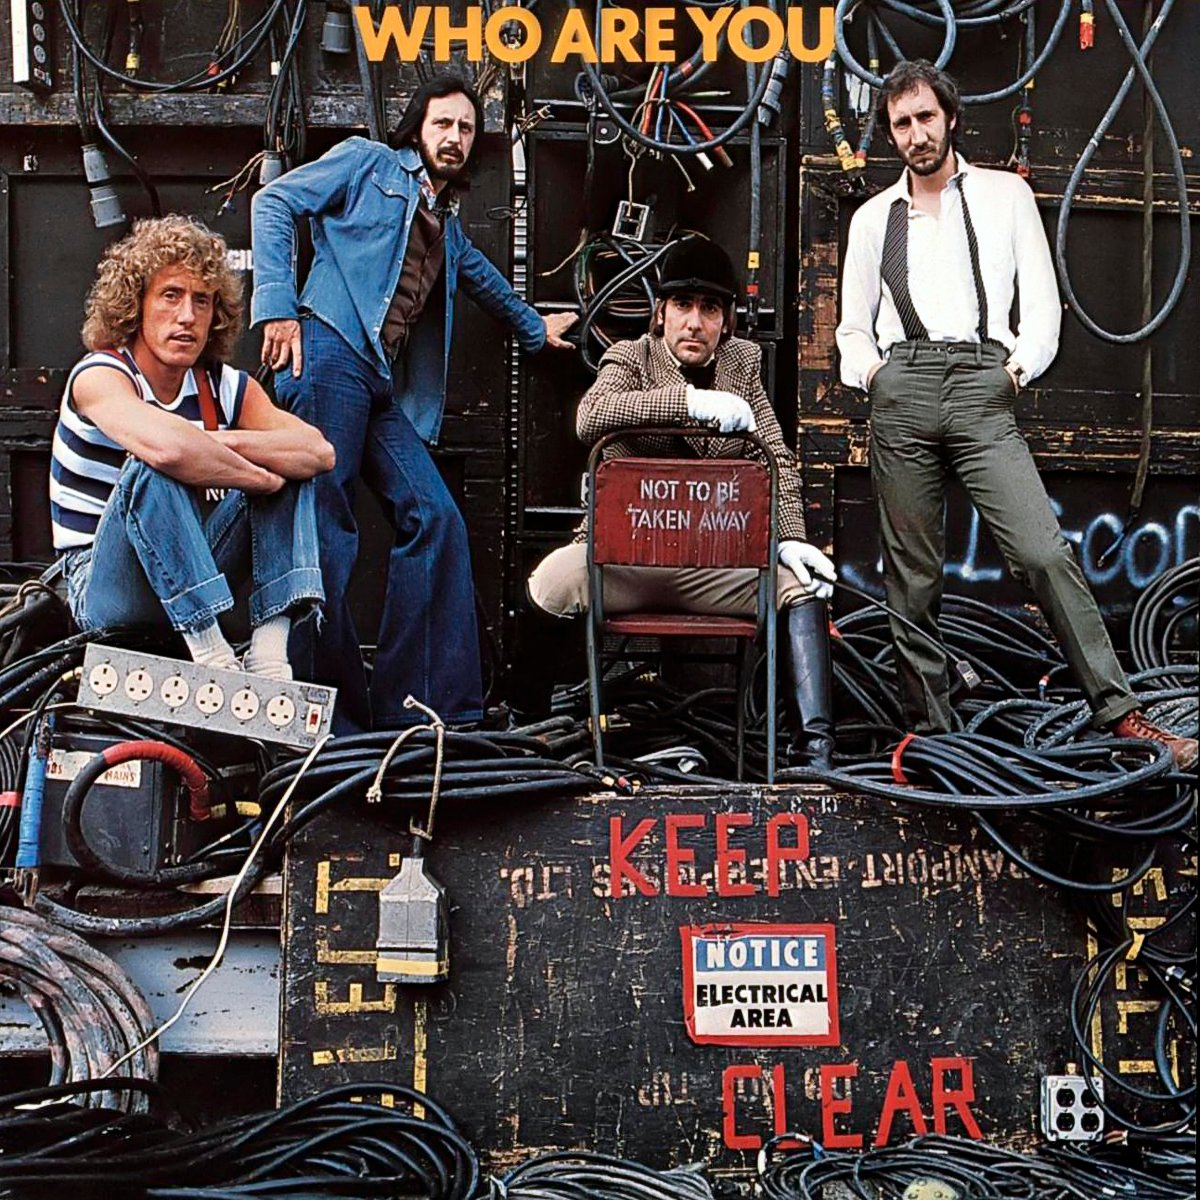 40 years ago today on August 18, 1978, The Who released eighth studio album &quot;Who Are You&quot;  !!!  https://www. youtube.com/watch?v=v_3ks7 -OjGc &nbsp; … <br>http://pic.twitter.com/fY651KHGdQ